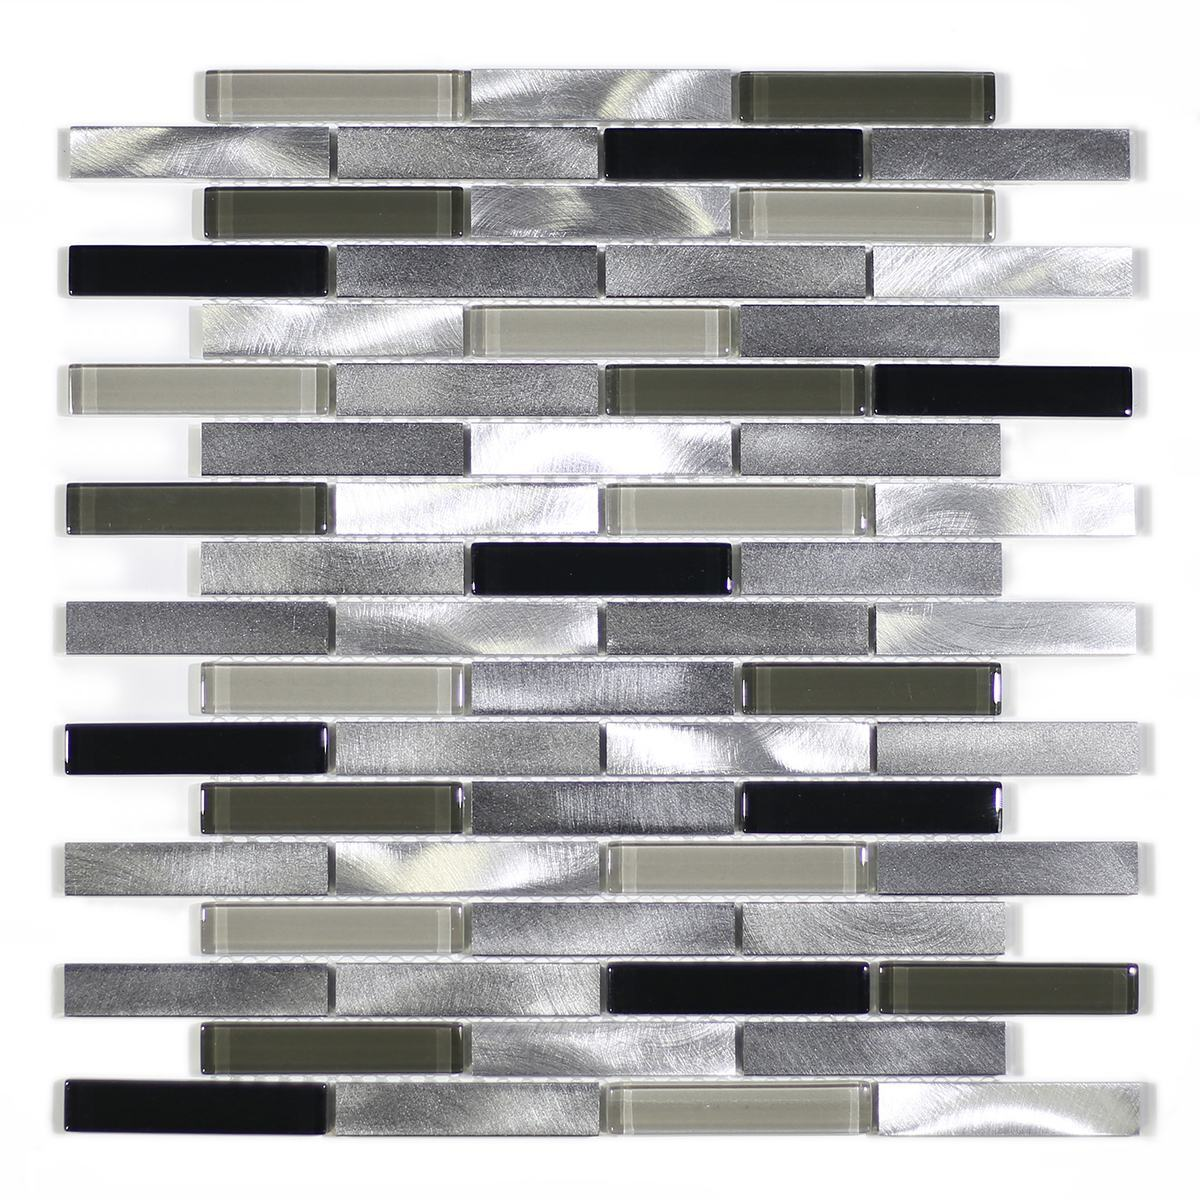 "MA64-B  3"" BRICK GLASS, STONE AND ALUMINUM COATING MOSAIC MIX"